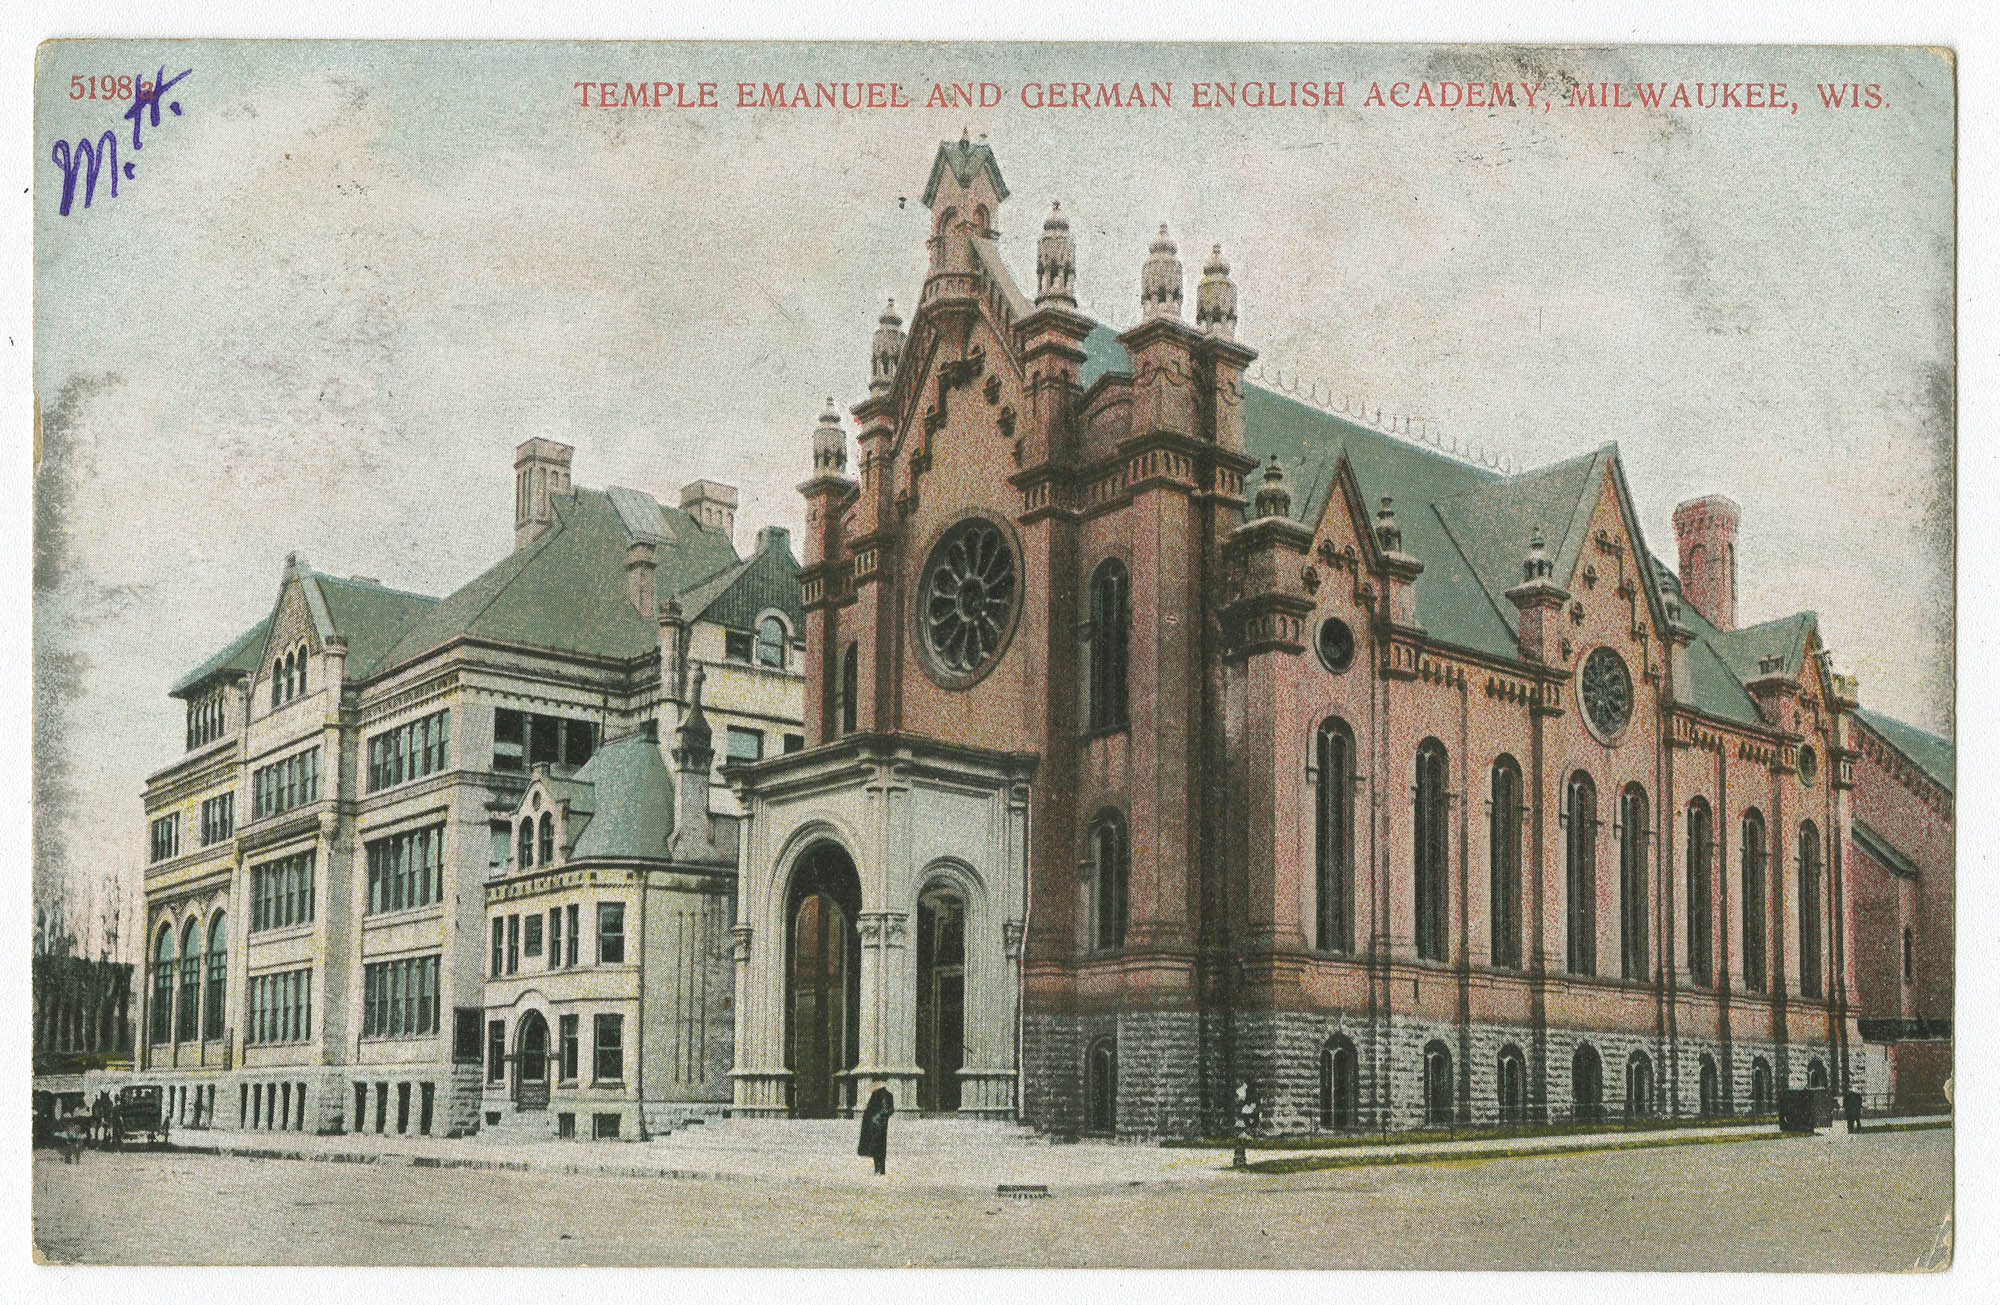 Temple Emanuel and German English Academy, Milwaukee, Wis.